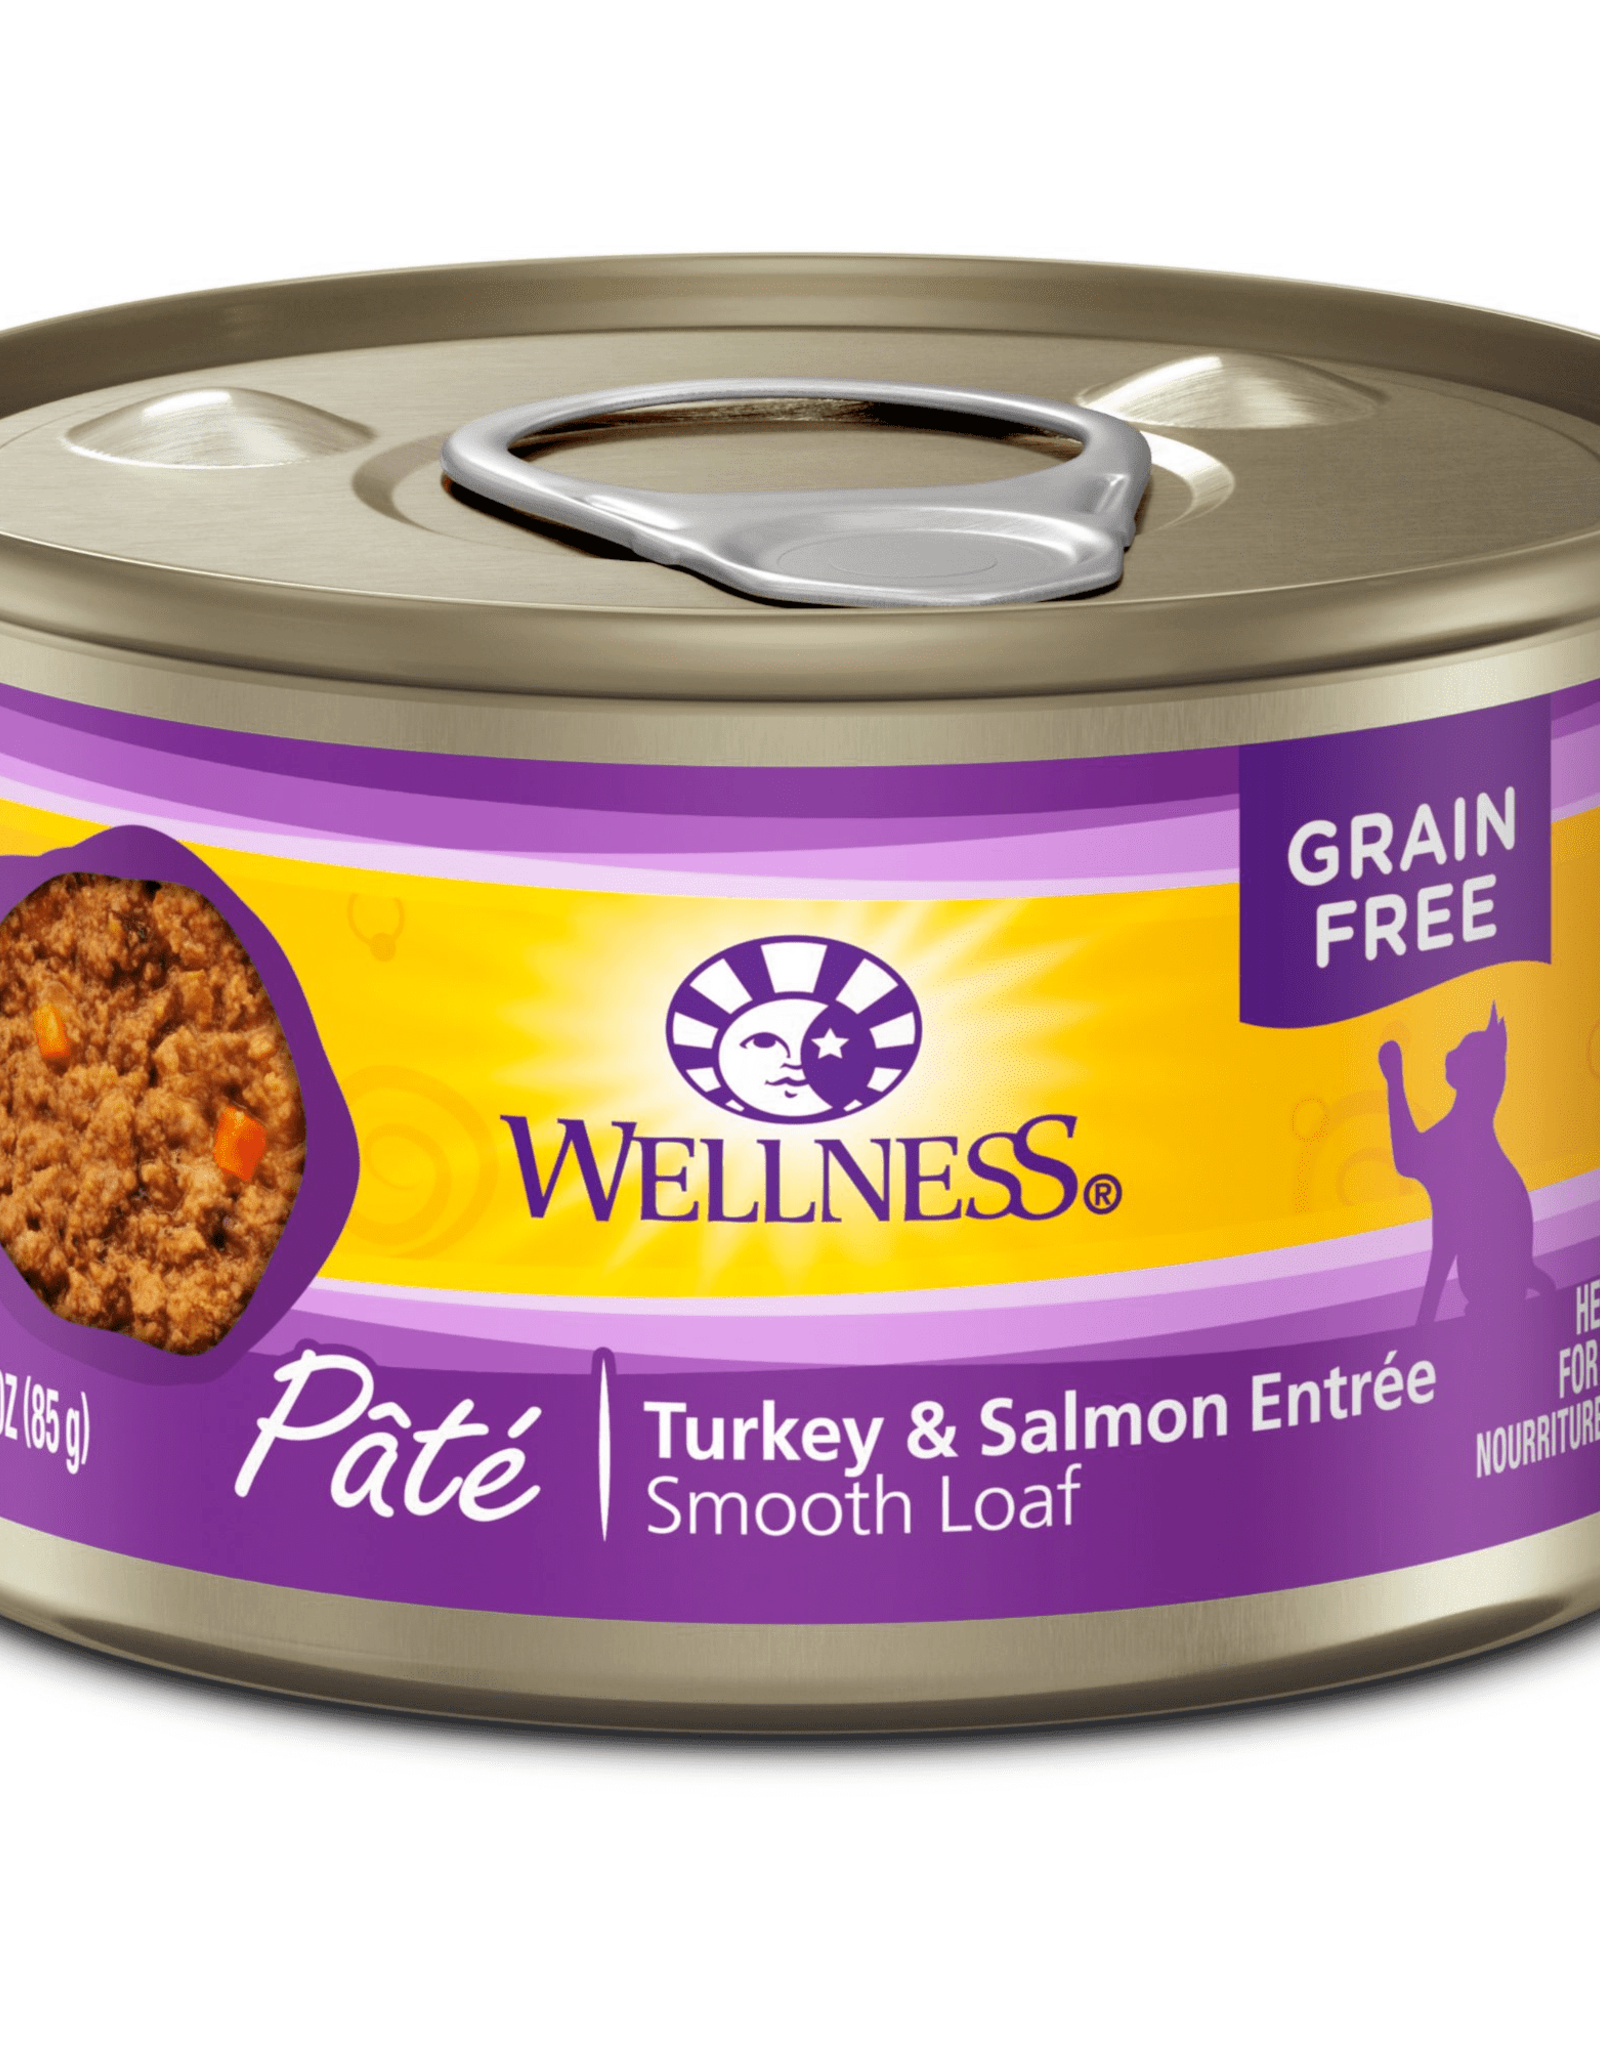 Wellness Pet Food Cat Complete Turkey & Salmon Pate - Grain-Free 5.5oz